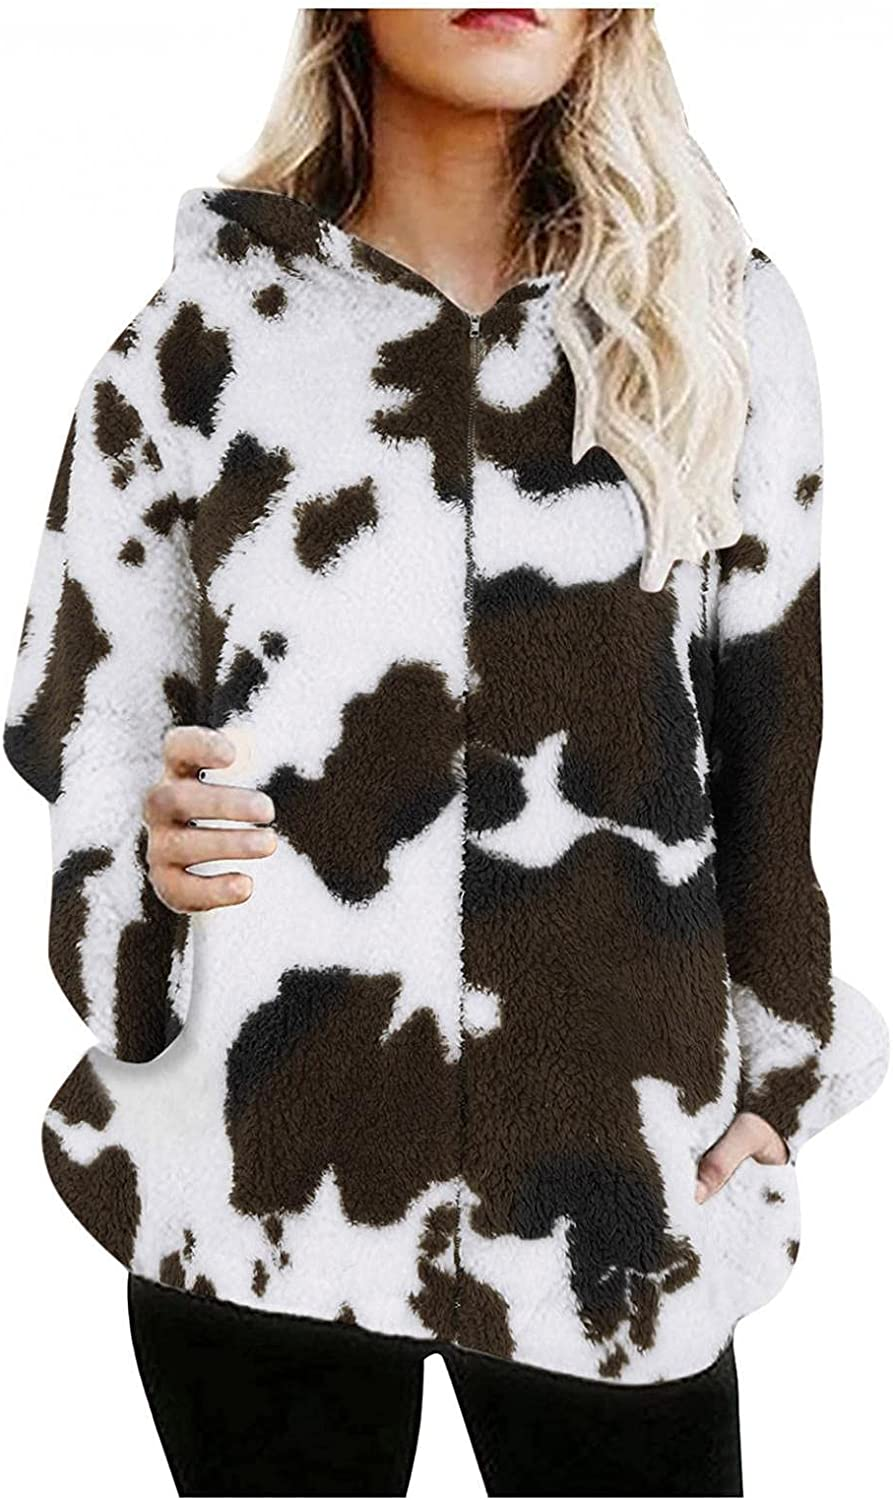 Smileyth Women's Thick Plush Zipper Coat Autumn and Winter Fashion Print Long Sleeve Faux Fuzzy Warm Hooded Jacket